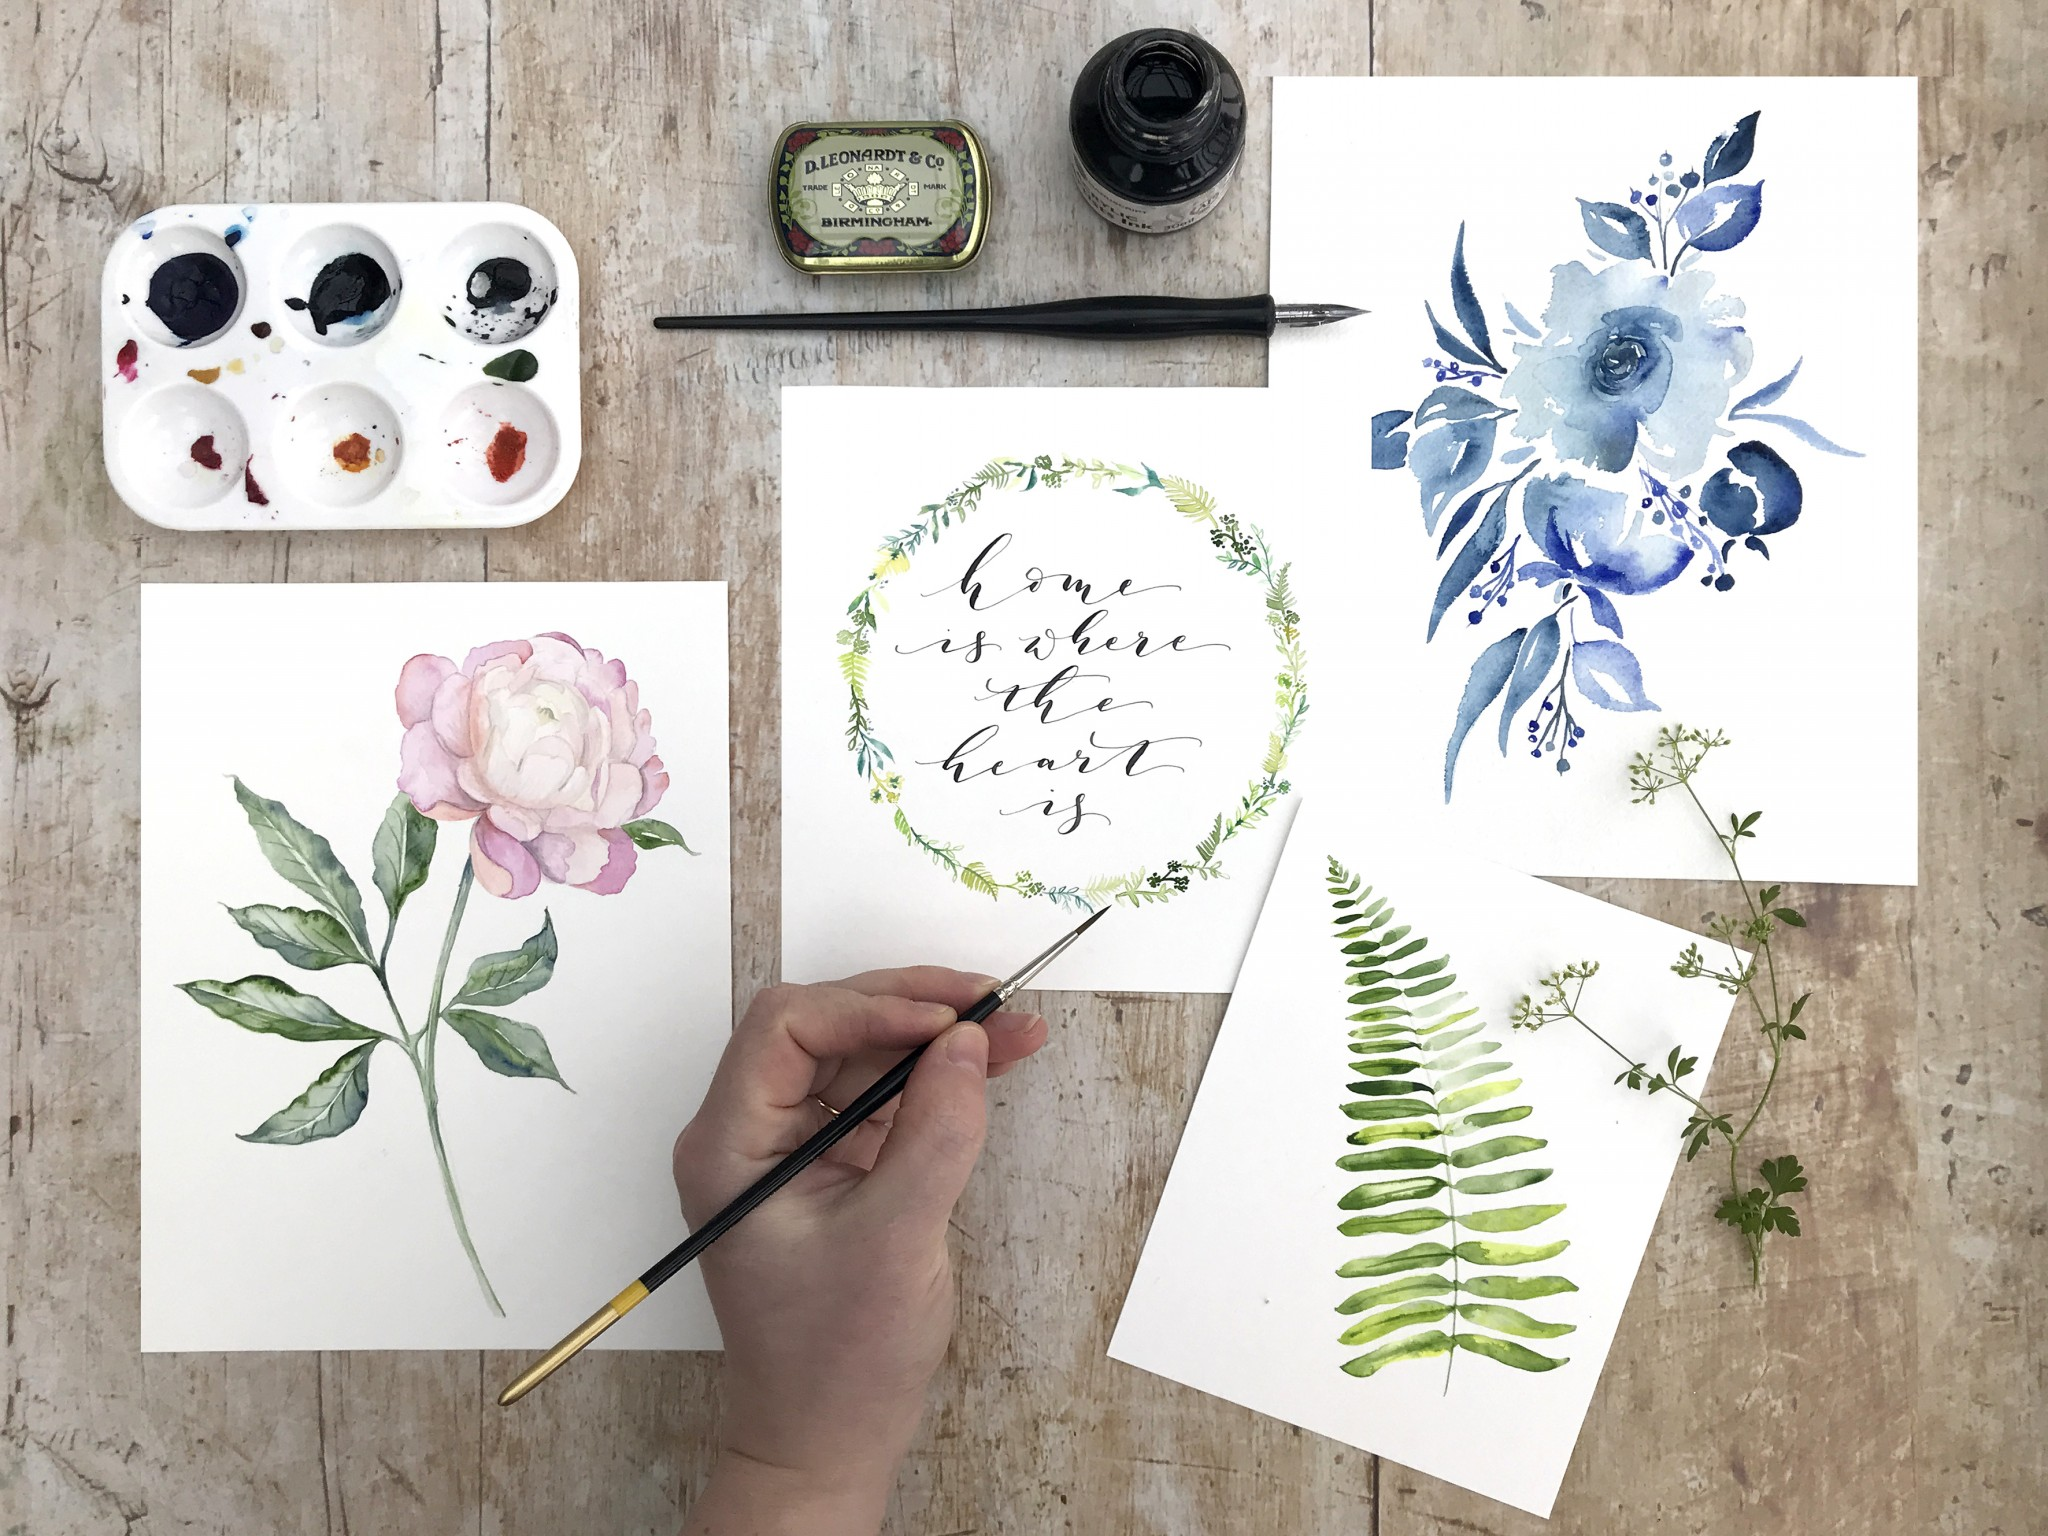 Watercolour and calligraphy at River cottage